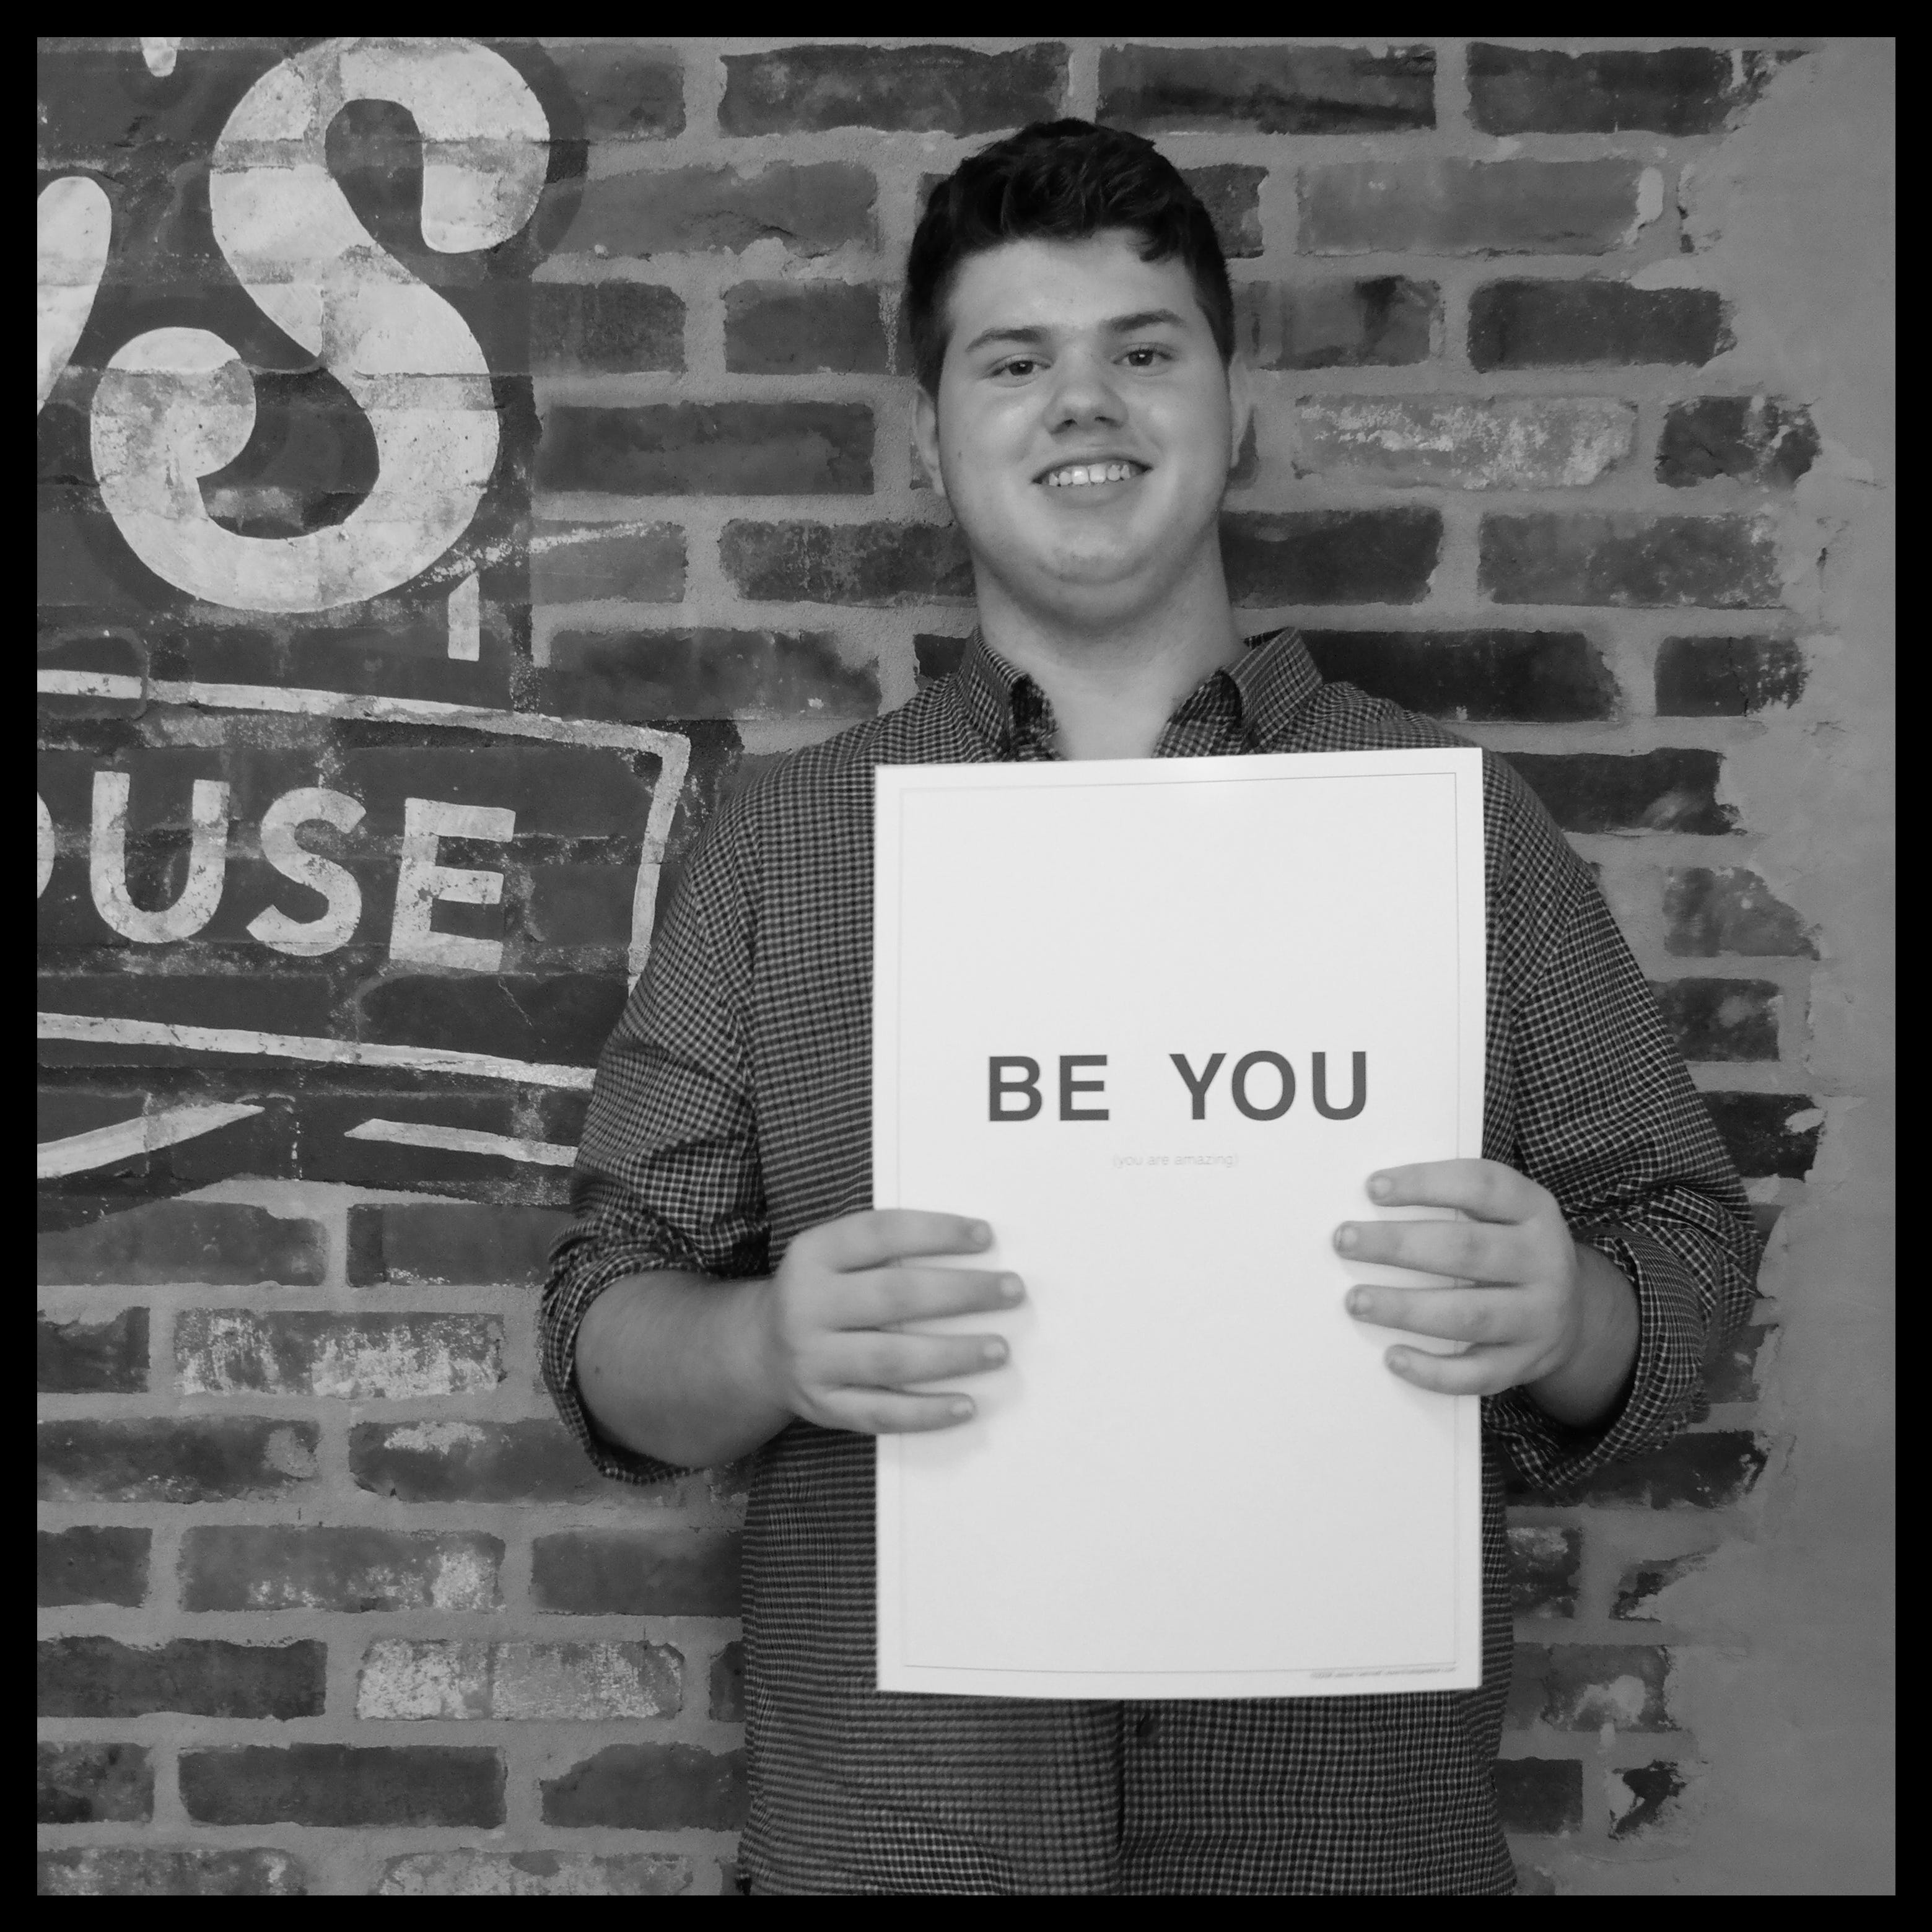 Be You: Siris Toby